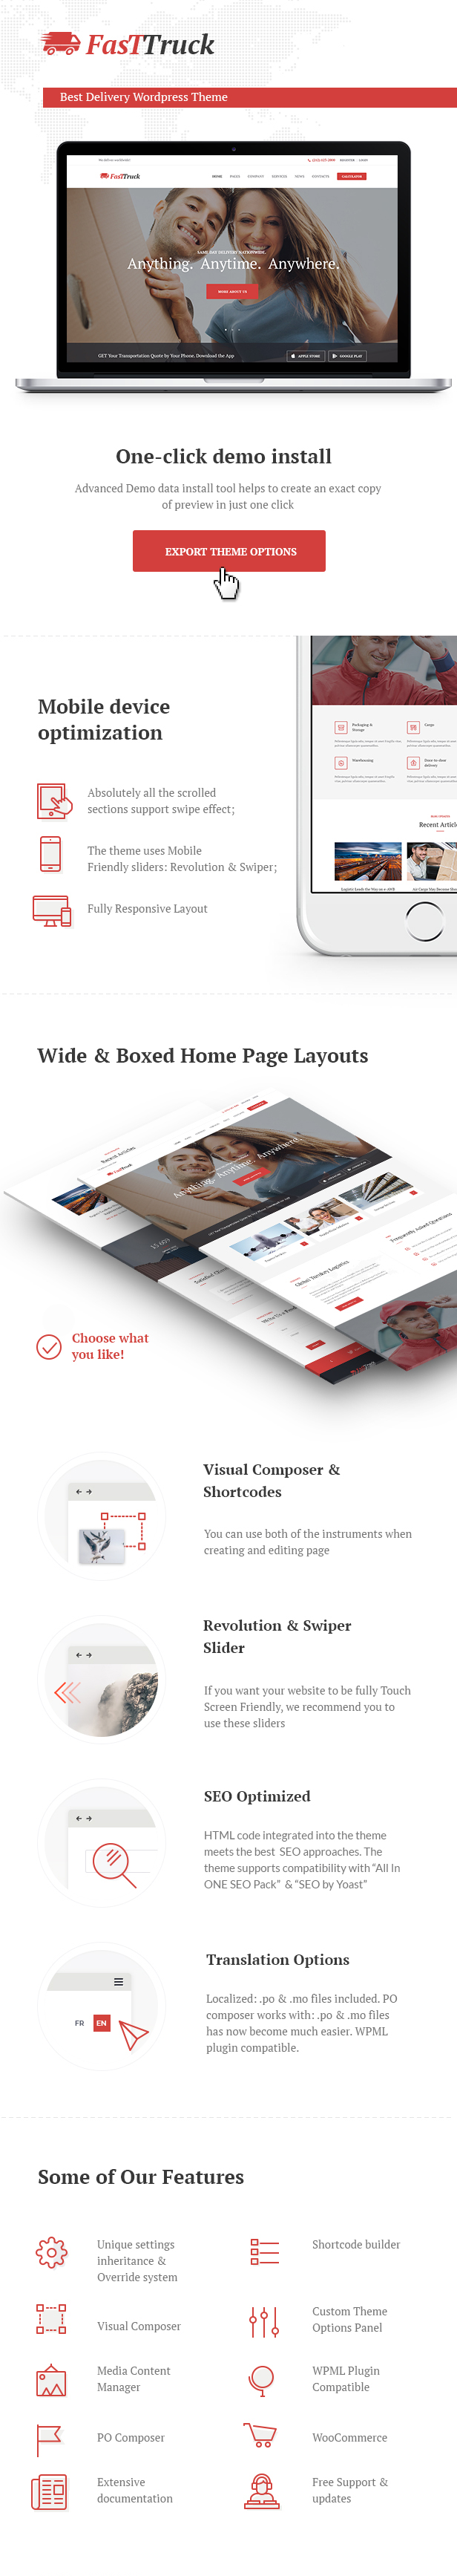 Fast truck is a trendy wordpress theme with premium business design ideal for logistics trucking warehousing transportation and freight services